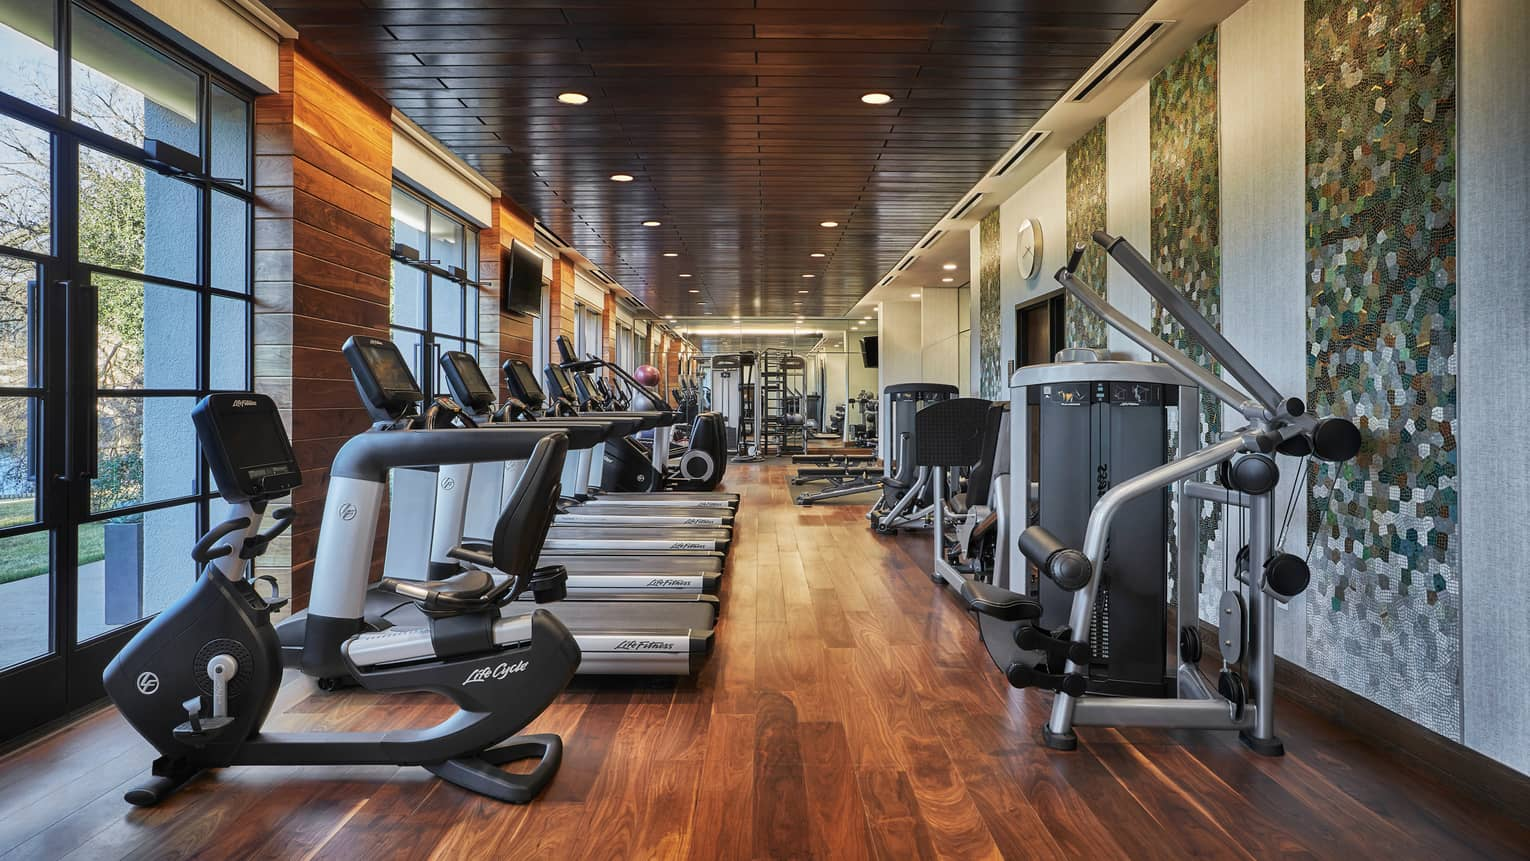 Treadmills, cardio machines, weight stations line long Fitness Centre